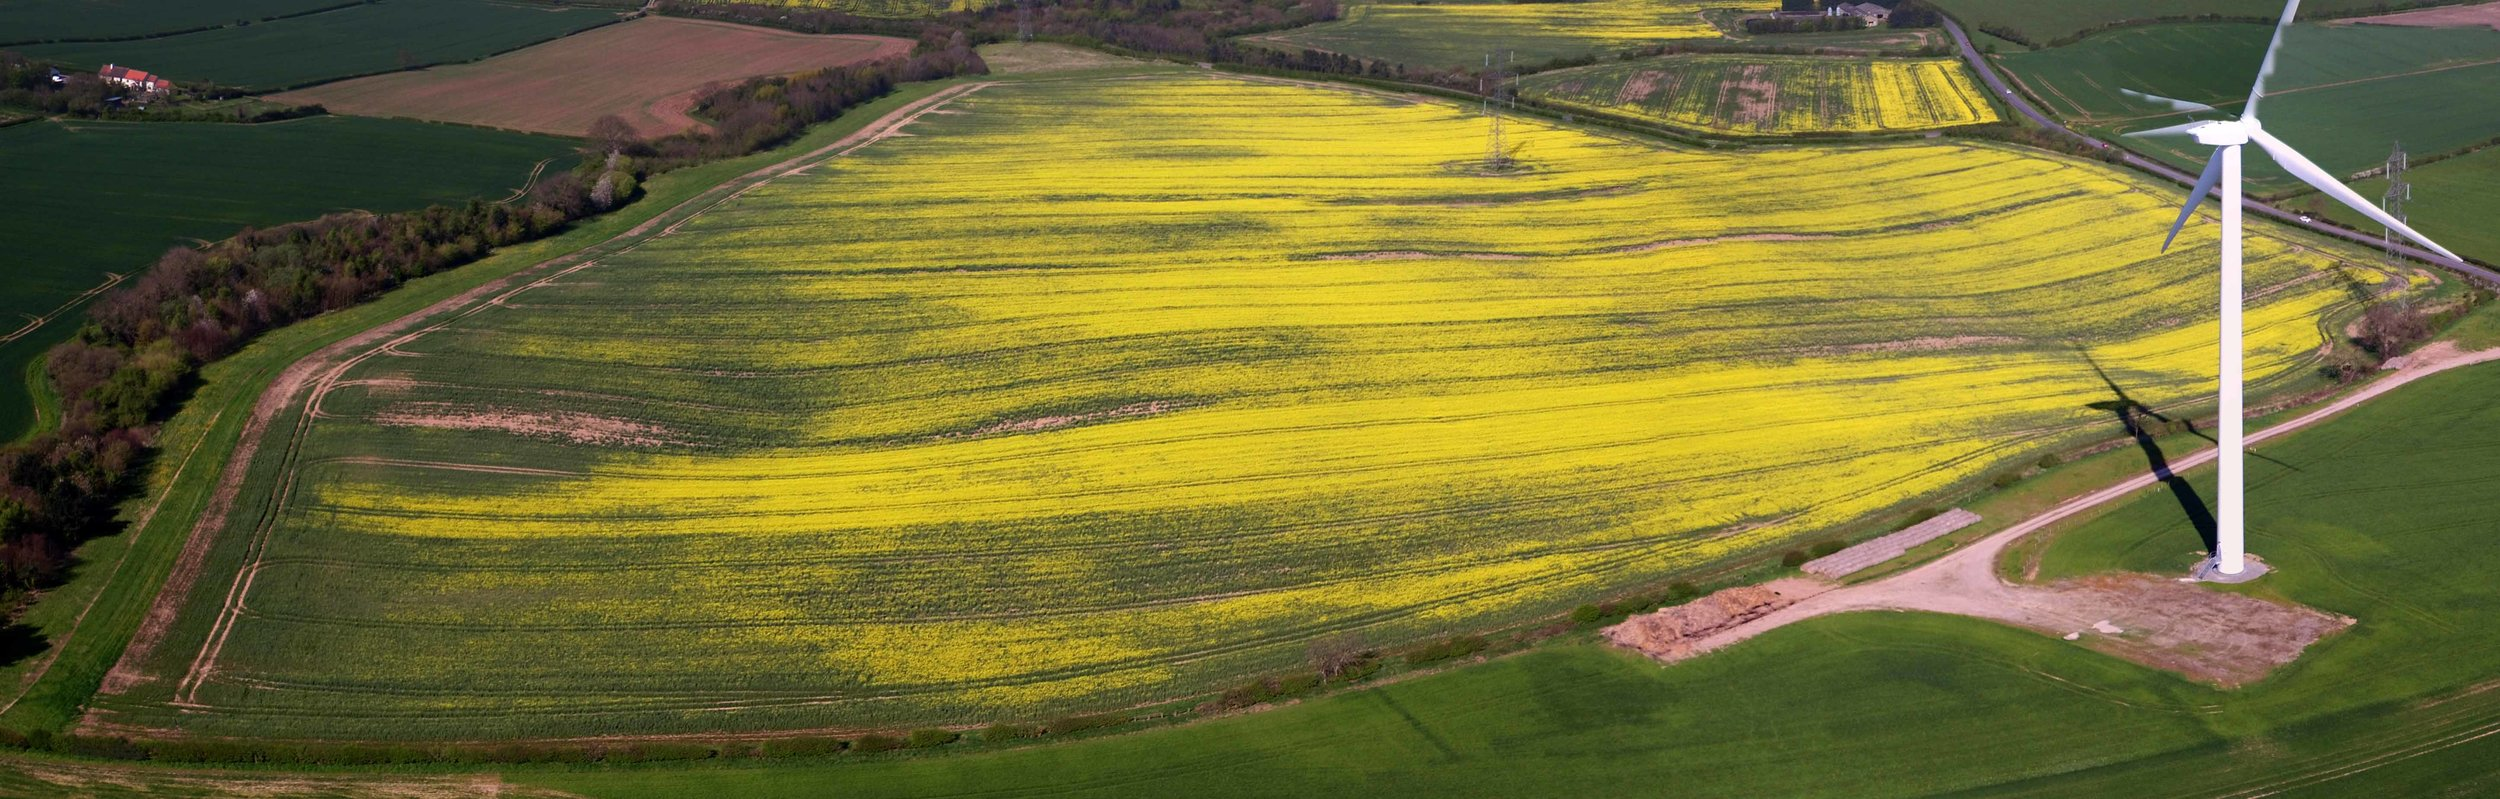 ... yet through the use of aerial imaging, assessing continued crop growth conditions and to detect any potential problems can be timely ascertained from the air.